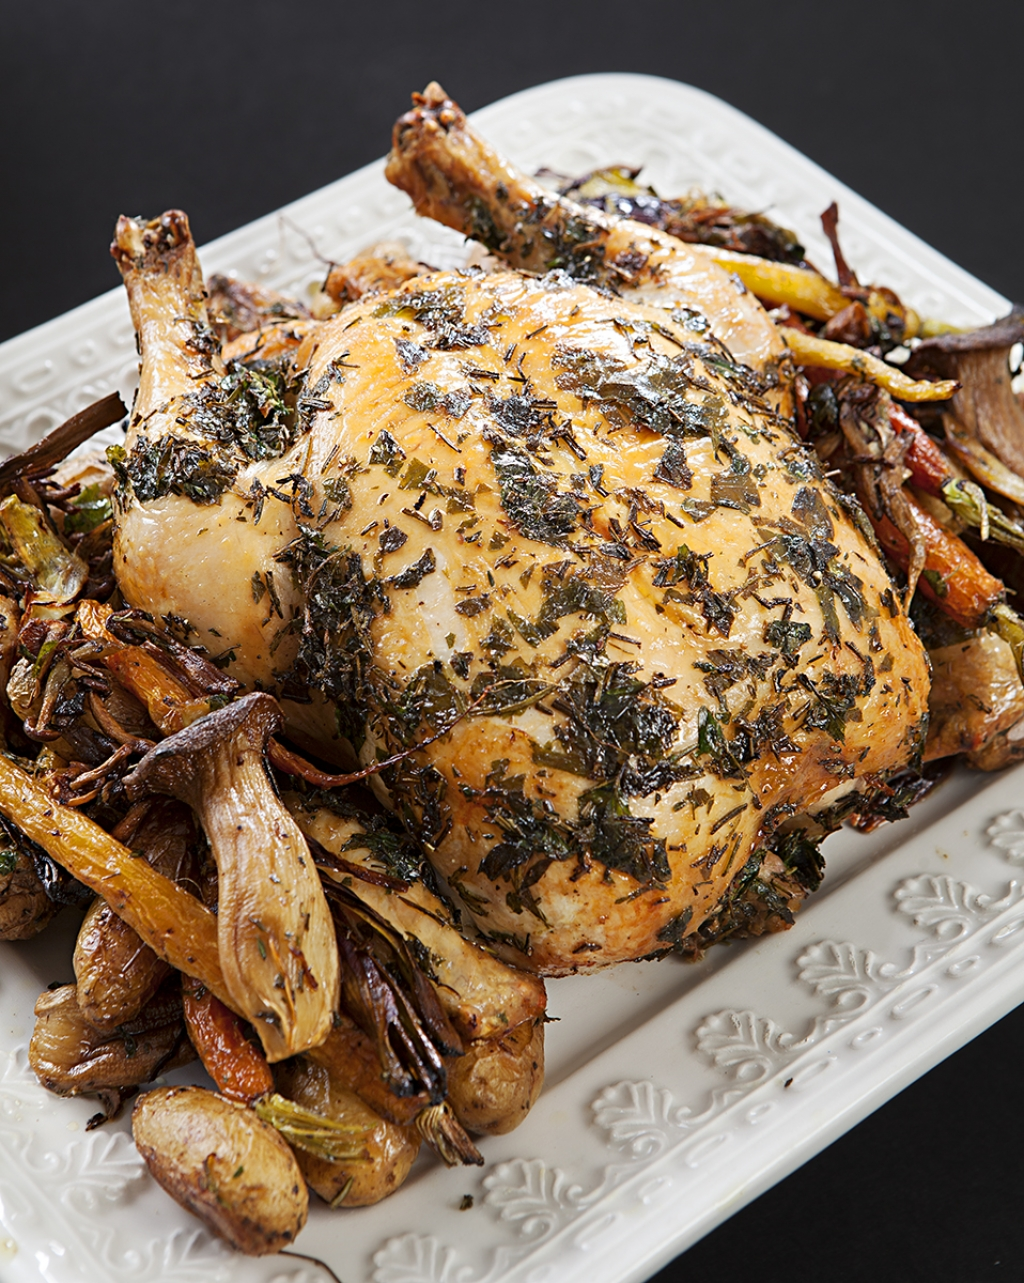 Roast Chicken with Tubers & Mushrooms